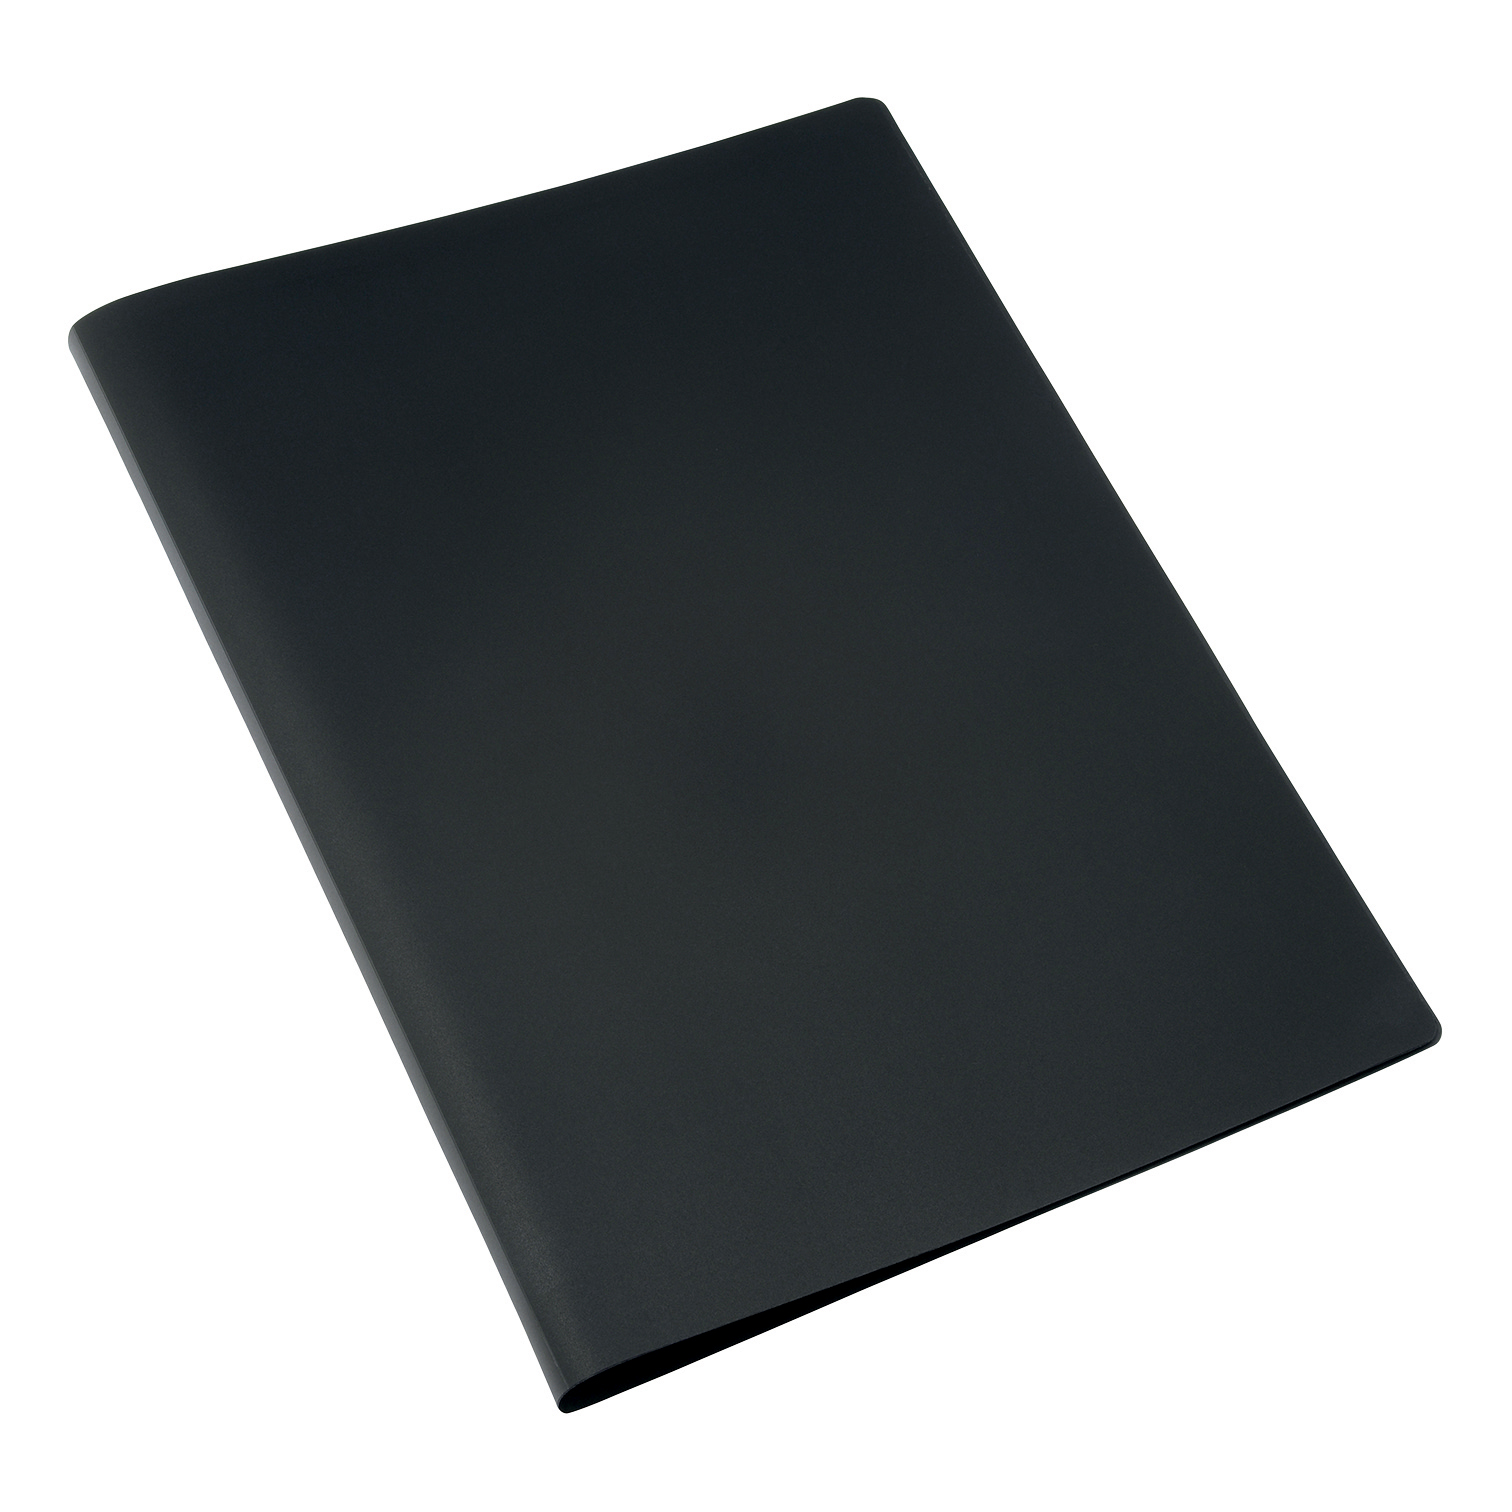 Display Books 5 Star Office Display Book Soft Cover Lightweight Polypropylene 40 Pockets A4 Black